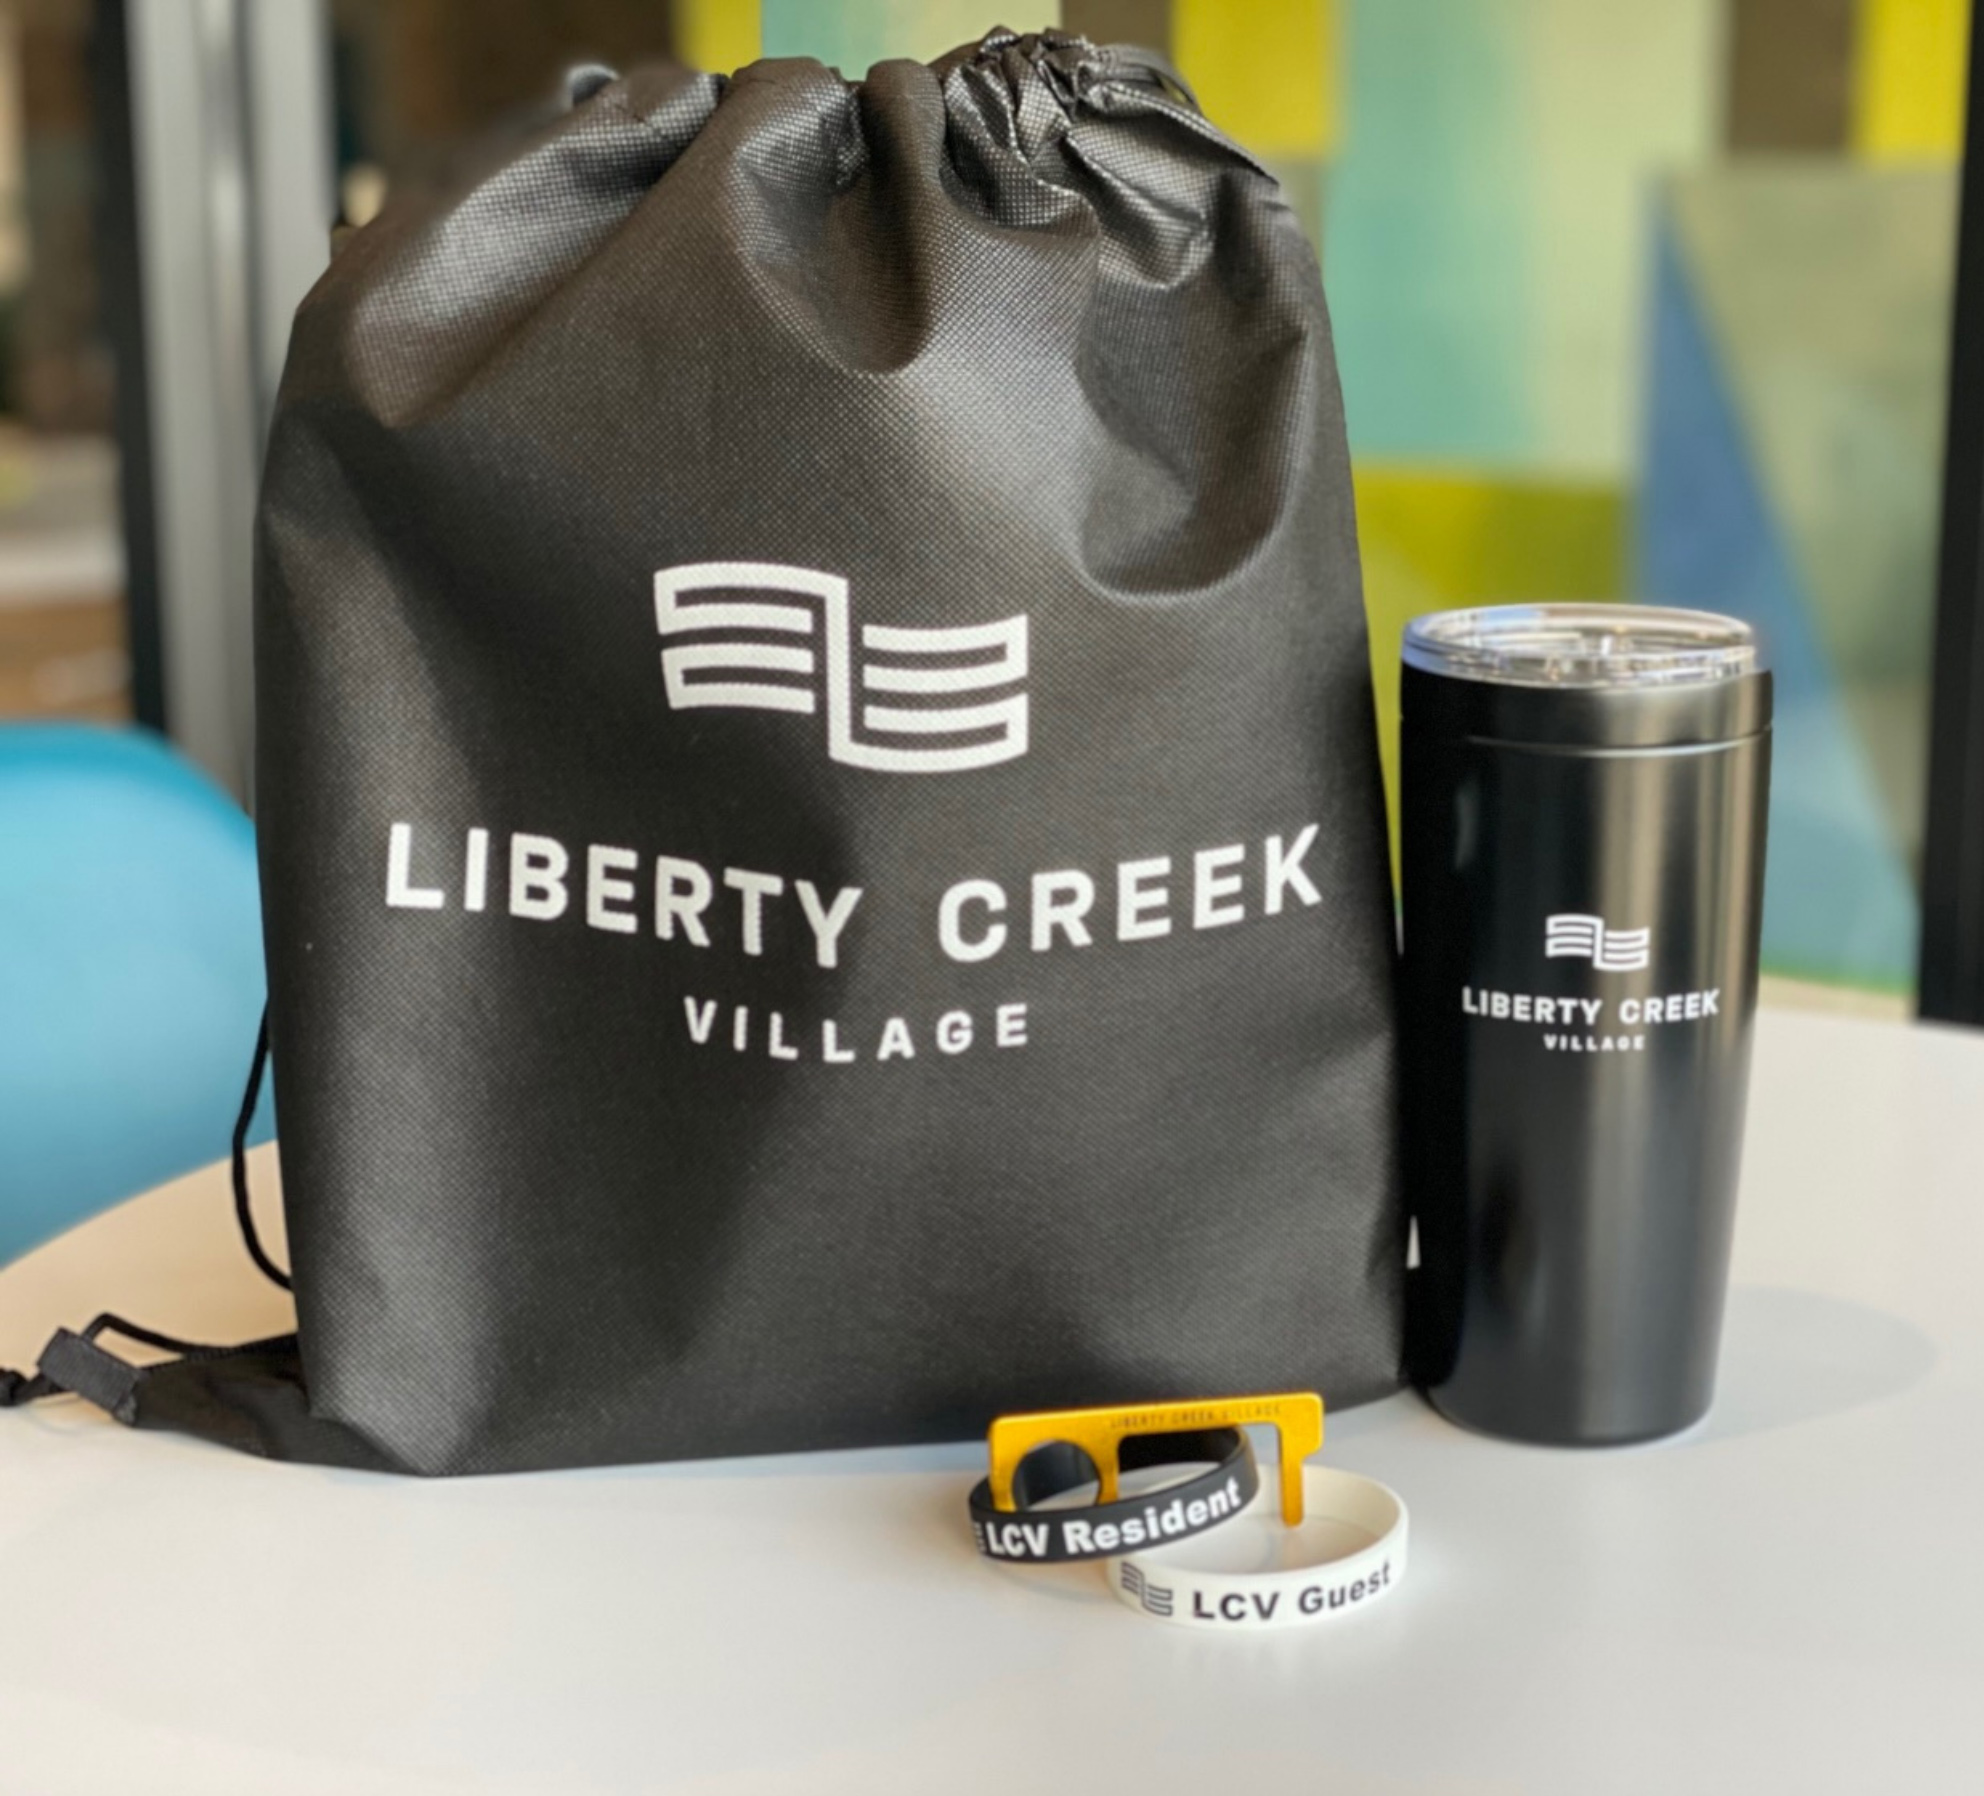 Liberty Creek Village Branded Promotional Items